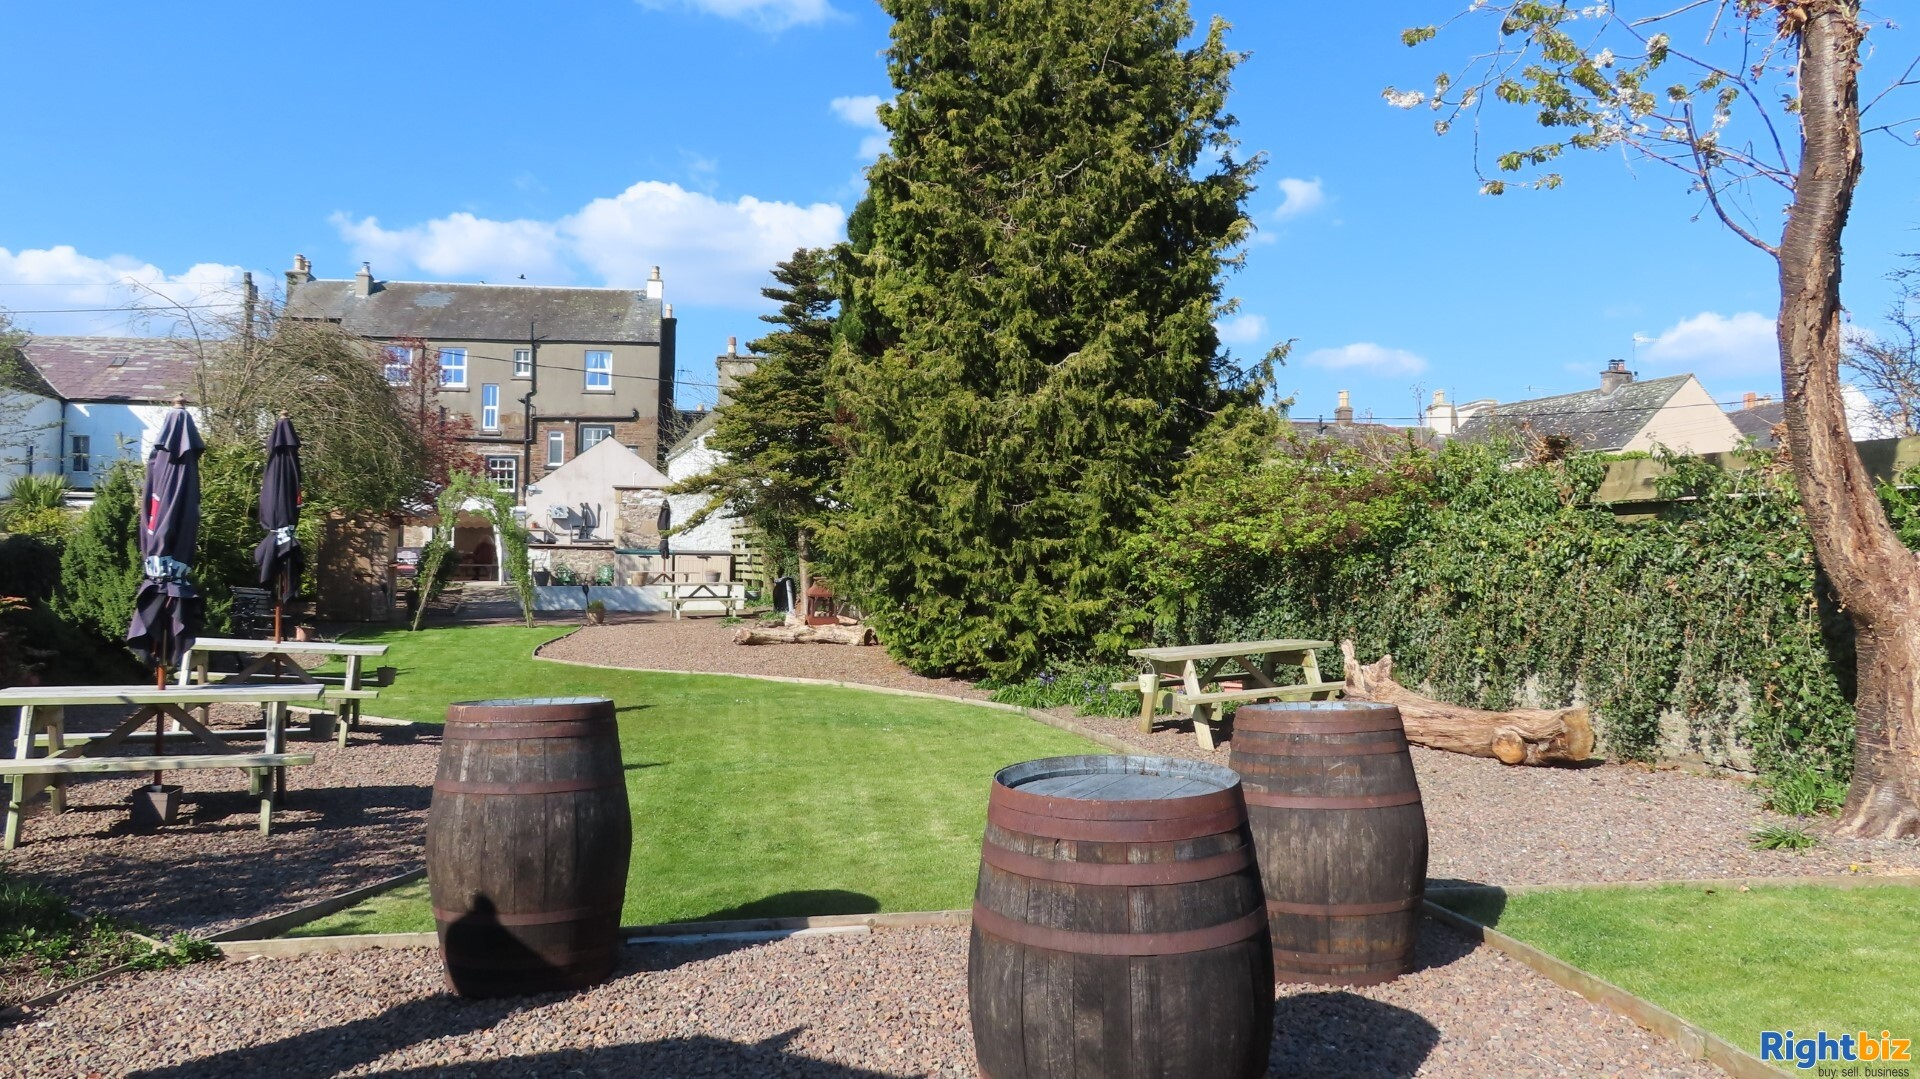 A stunning recently refurbished small Hotel with Restaurant in Kirkcudbright - Image 2